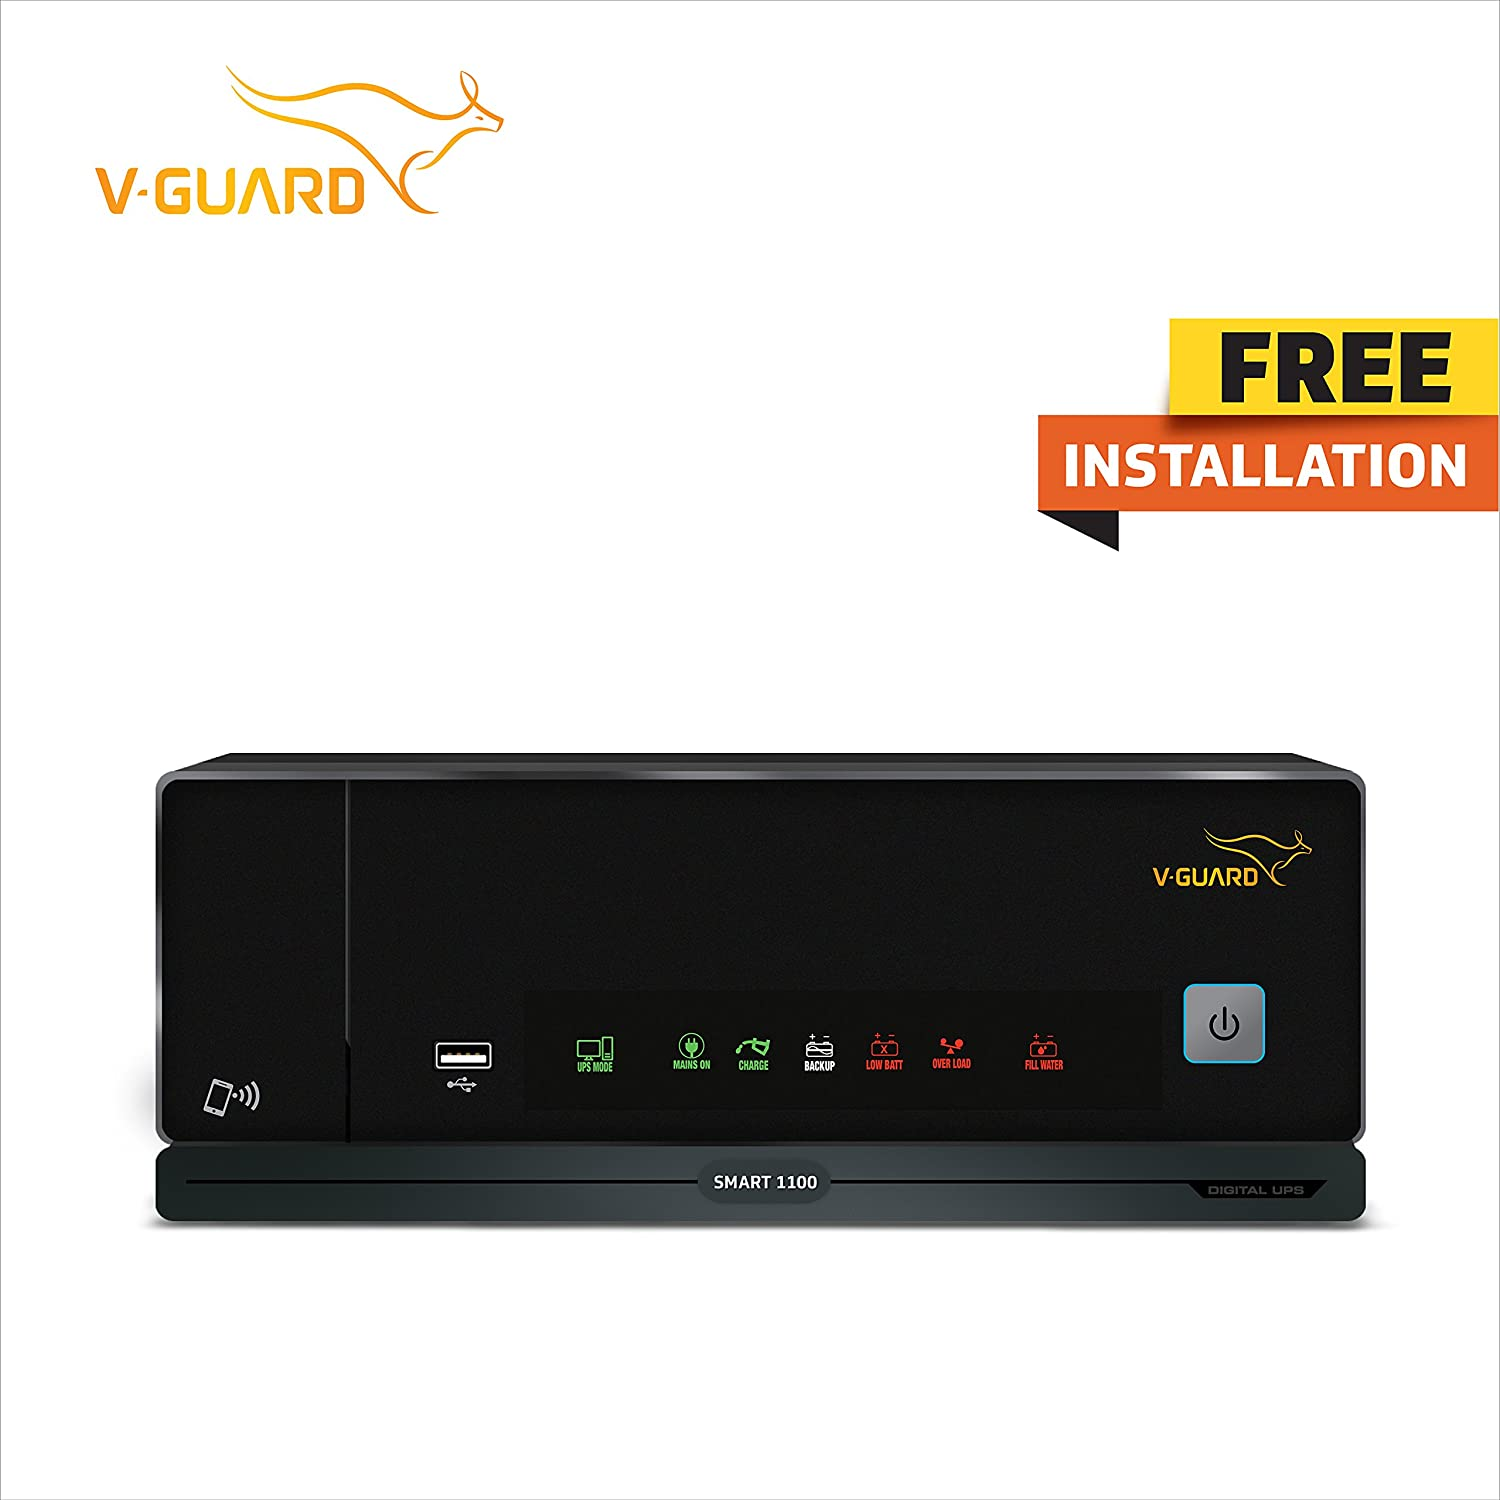 V-Guard ABS Digital UPS Smart 1100 with Mobile Connectivity